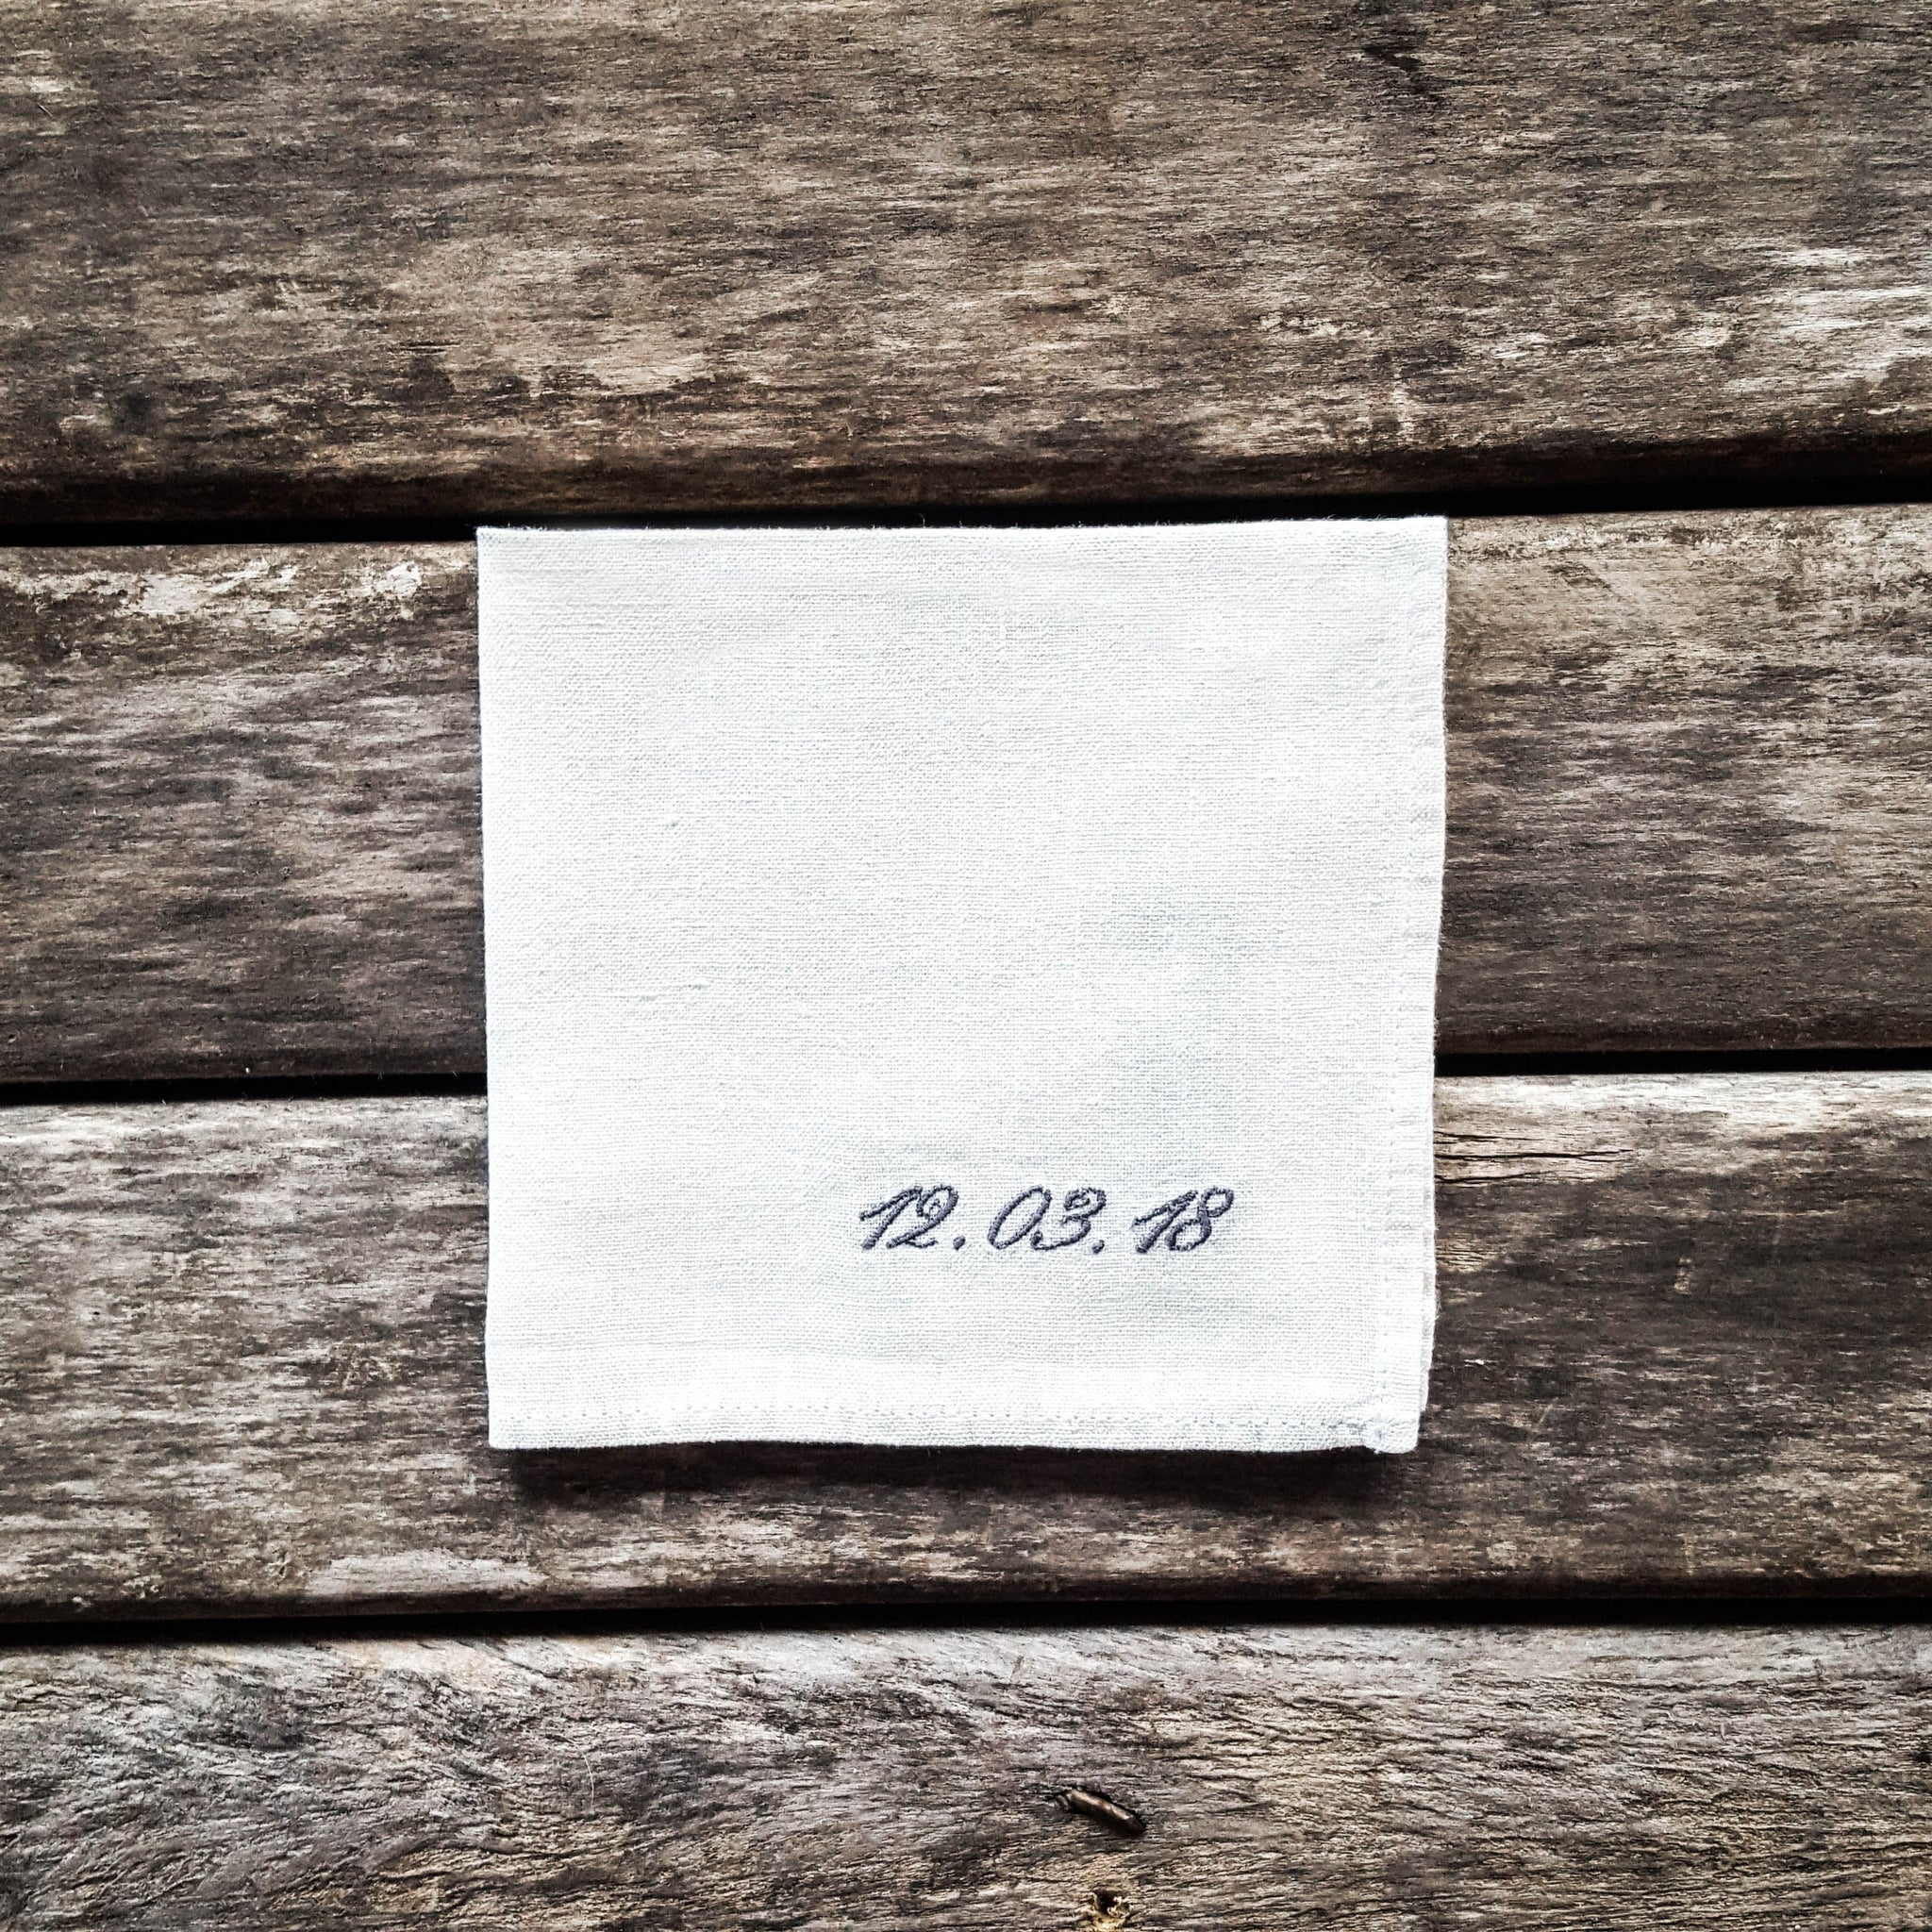 White personalized linen handkerchief, handkerchief with date